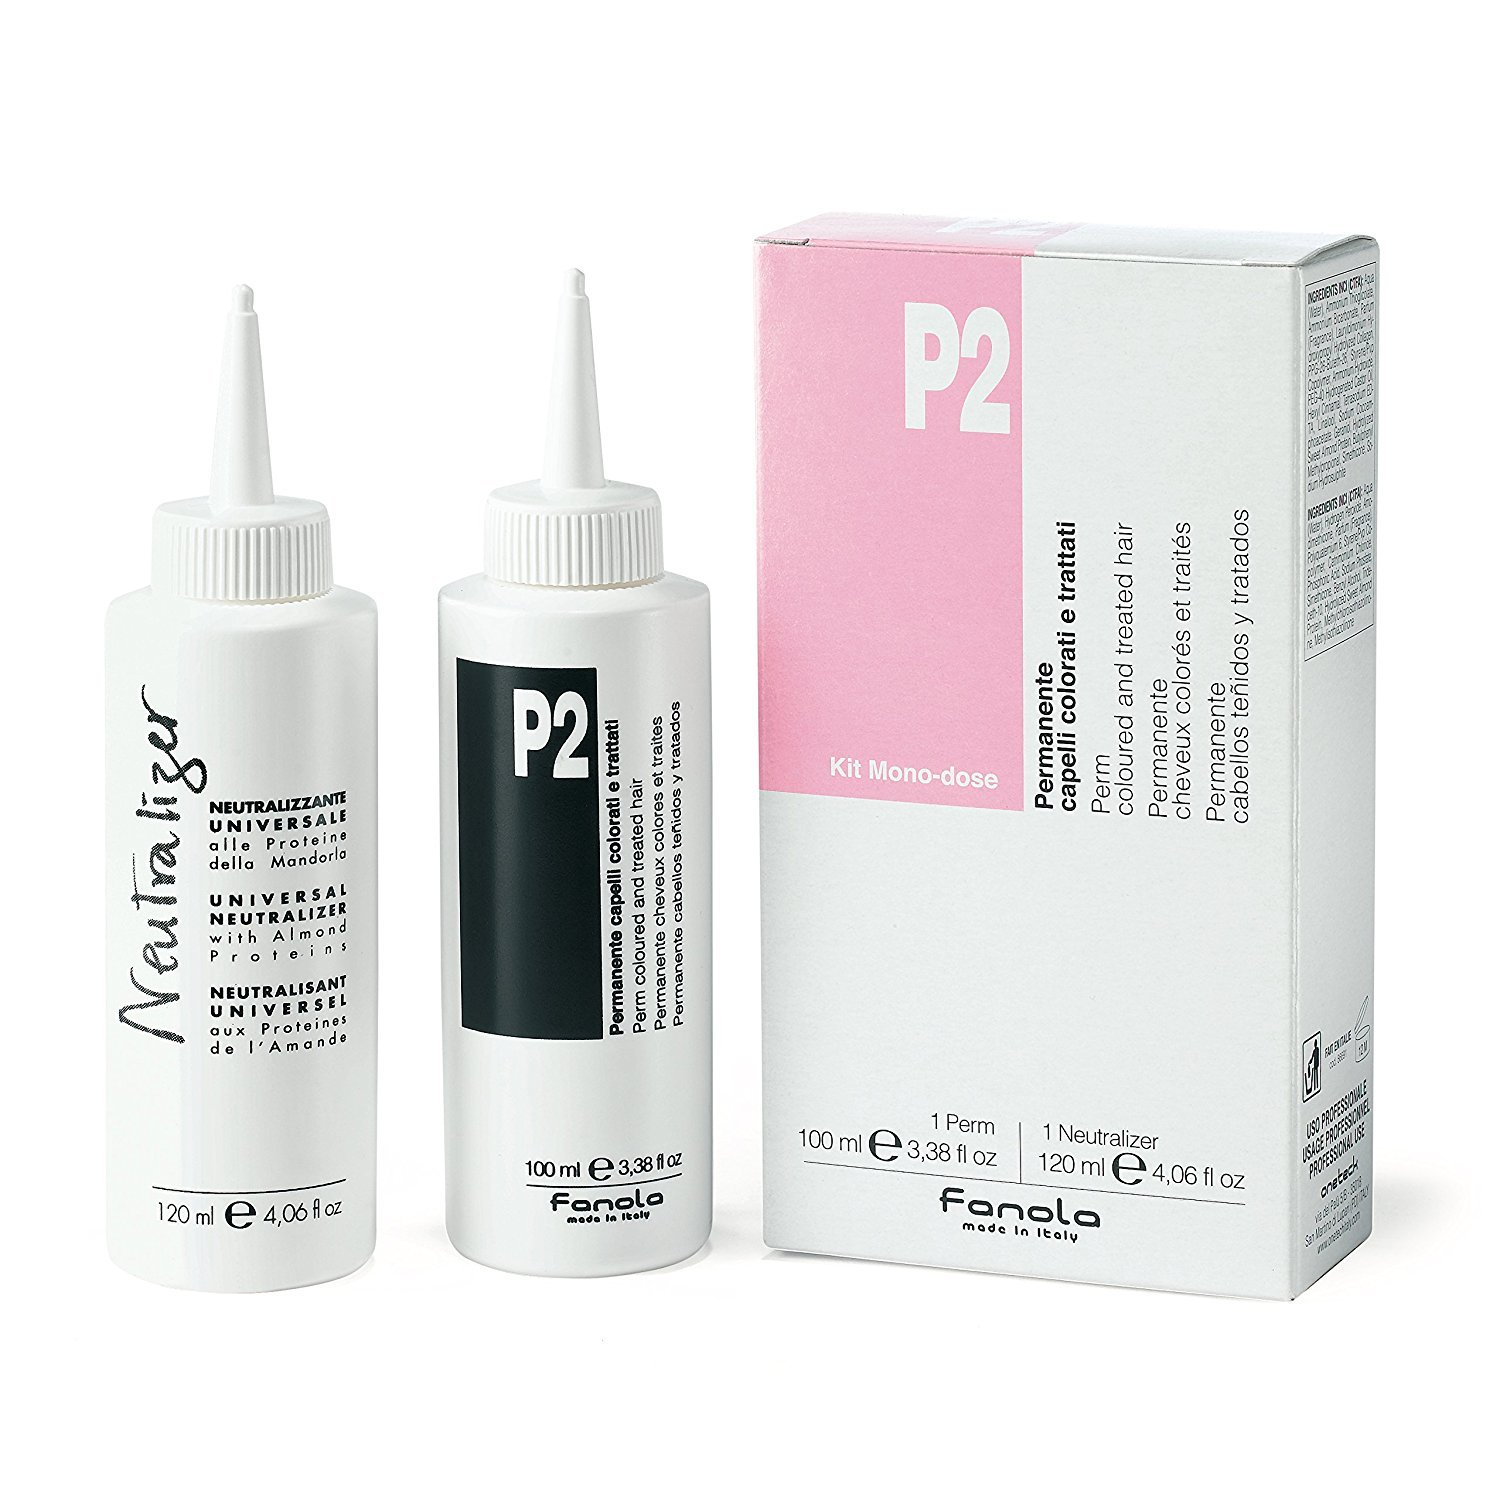 FANOLA P2 PERMANENTE CAPELLI COLORATI E TRATTATI KIT MONODOSE 120+100 ml 8032947866915